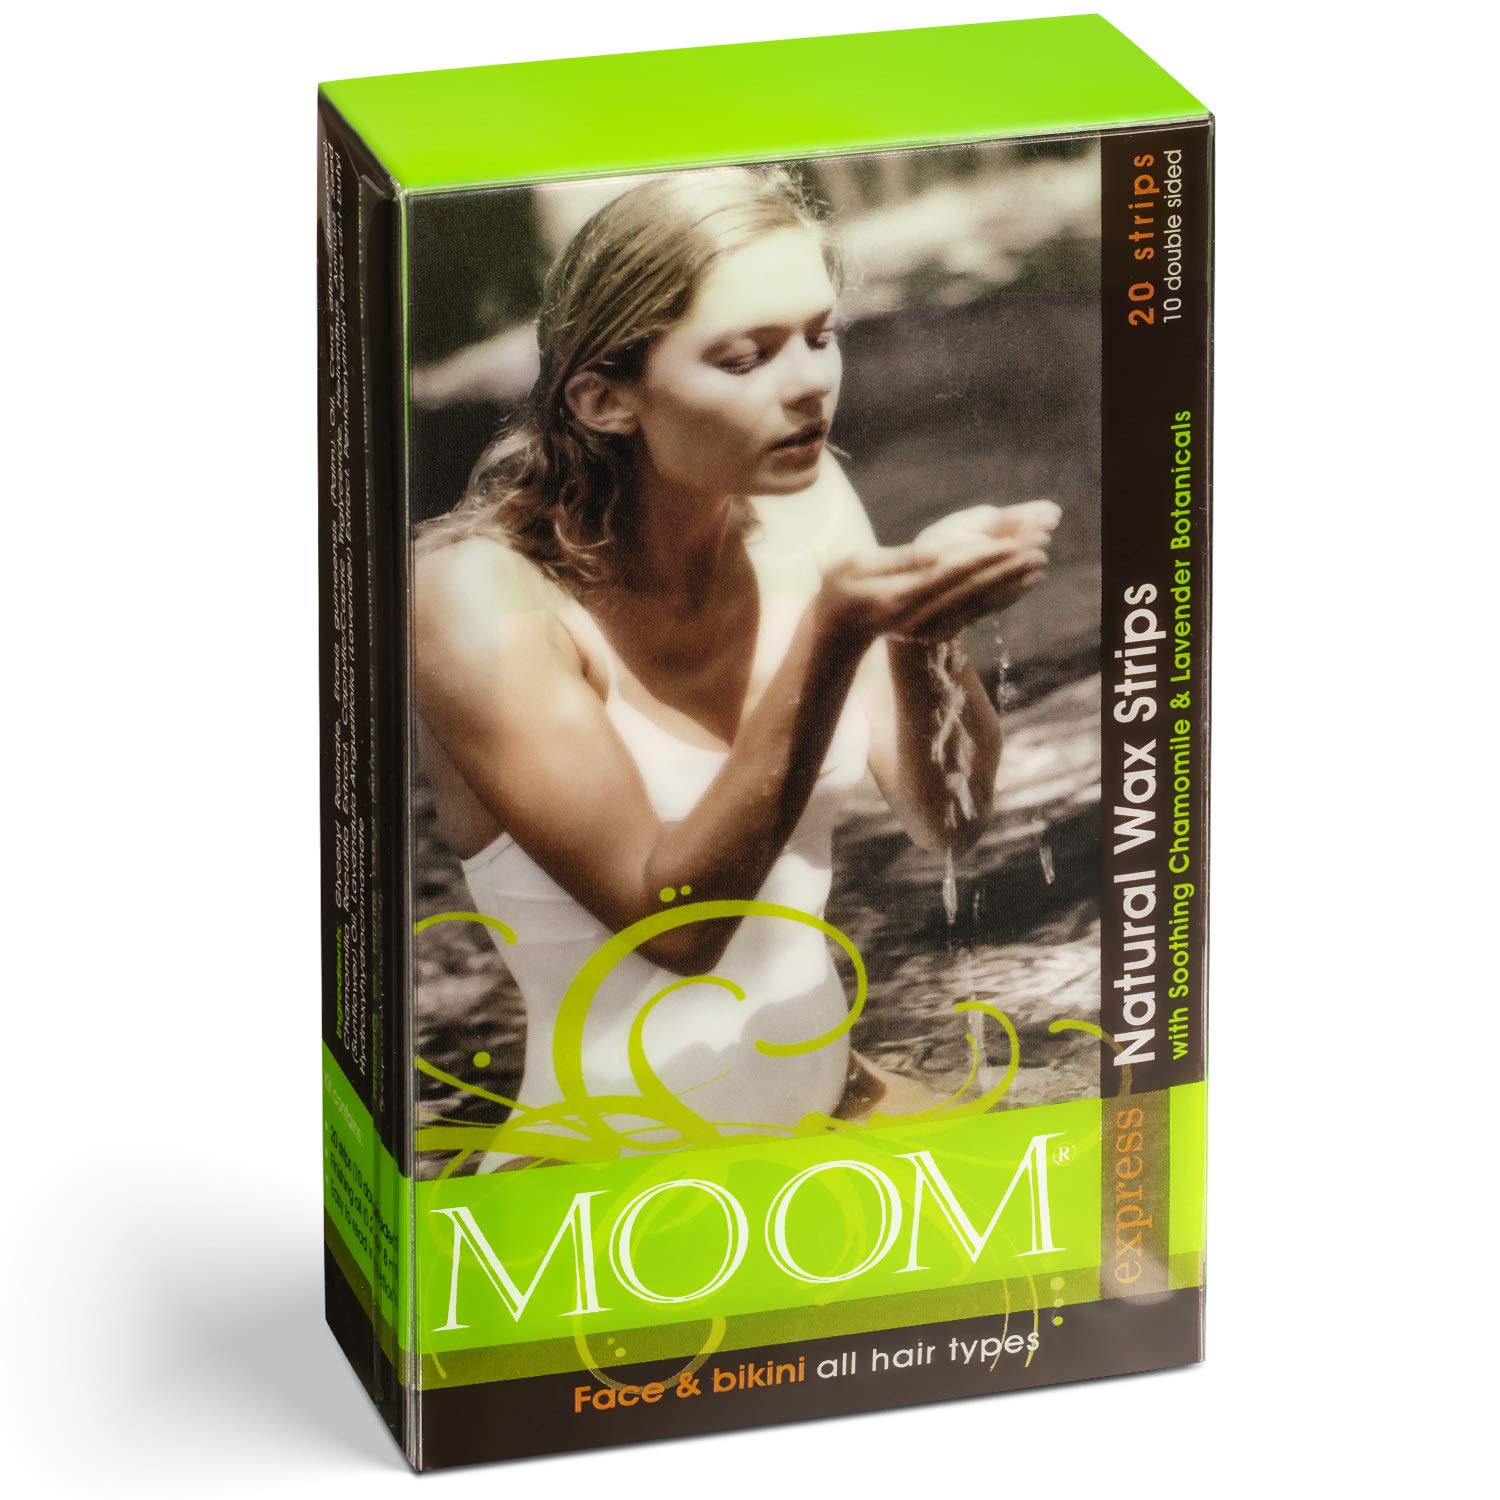 MOOM Face and Eyebrow Waxing Strips for Women with Natural Soothing Chamomile & Lavender Hair Waxing Strips with Vitamin E Finishing Oil – Perfect for Face & Bikini (20 Pre-Waxed Strips) 1 Pack